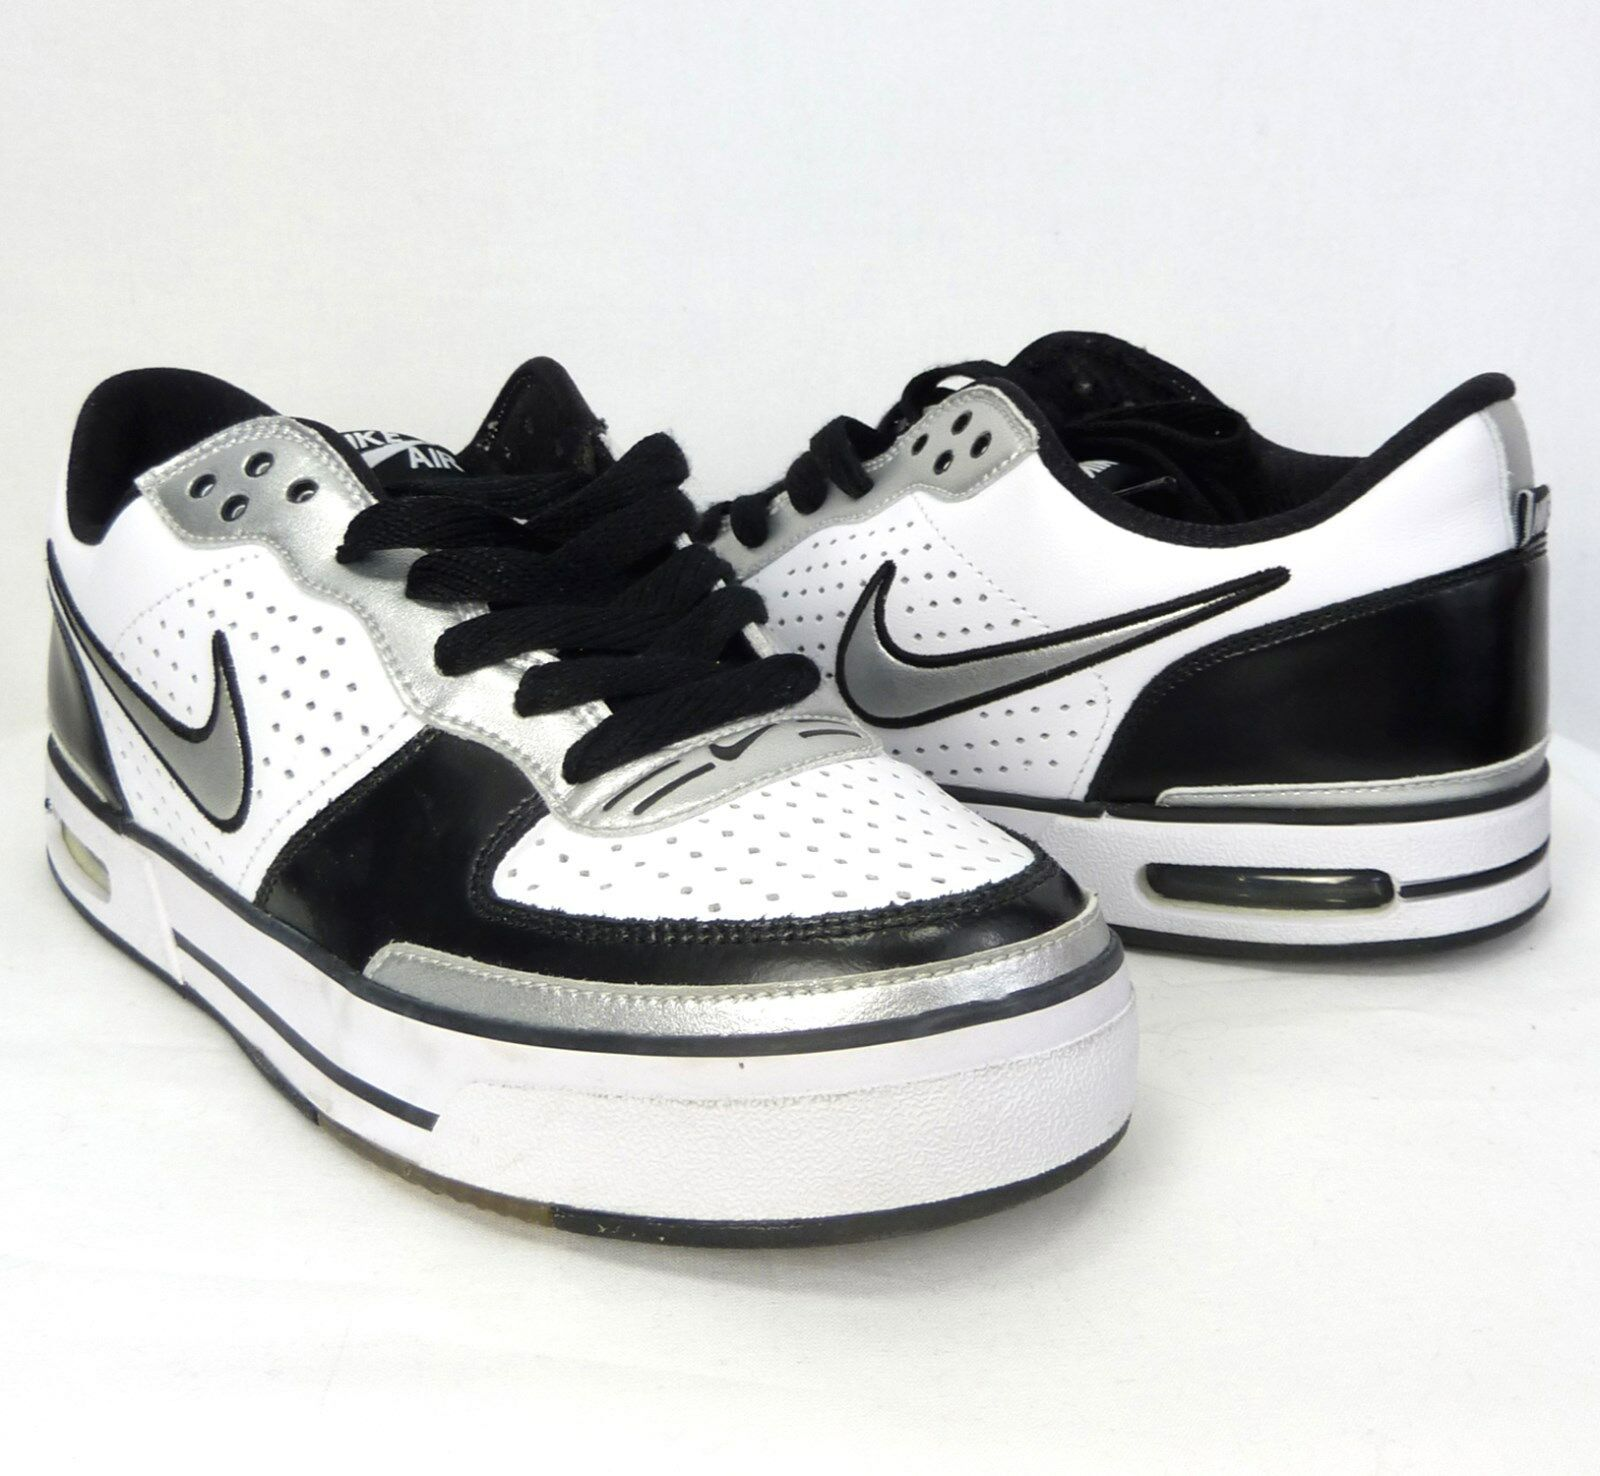 NIKE AIR CAPTIVATE SHOES SNEAKERS DEADSTOCK SIZE 8.5 US